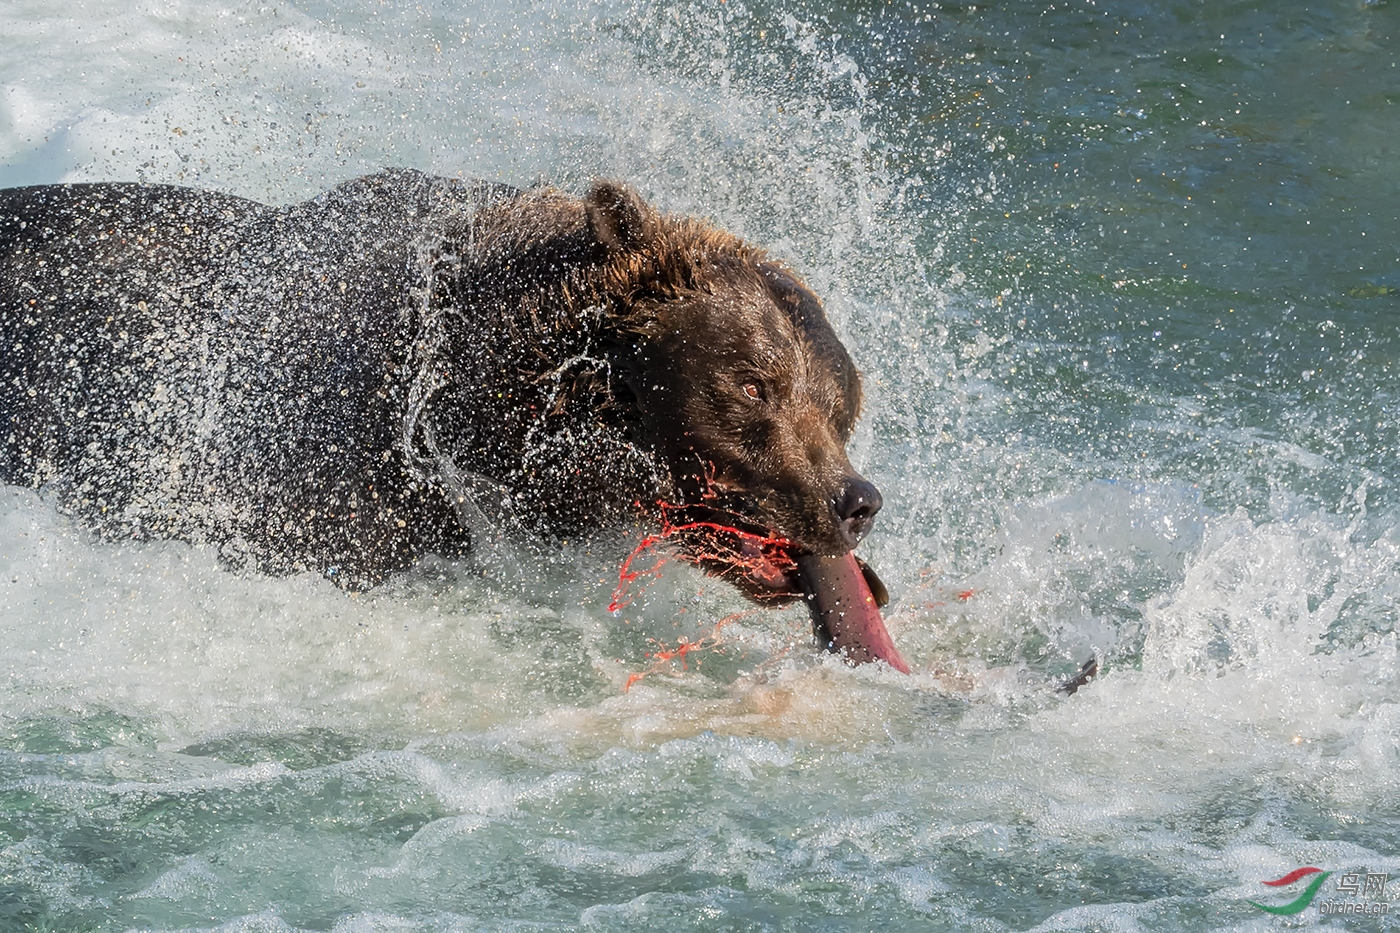 0261.Grizzly Bear Catch in water  s1400-菲舍捷.jpg